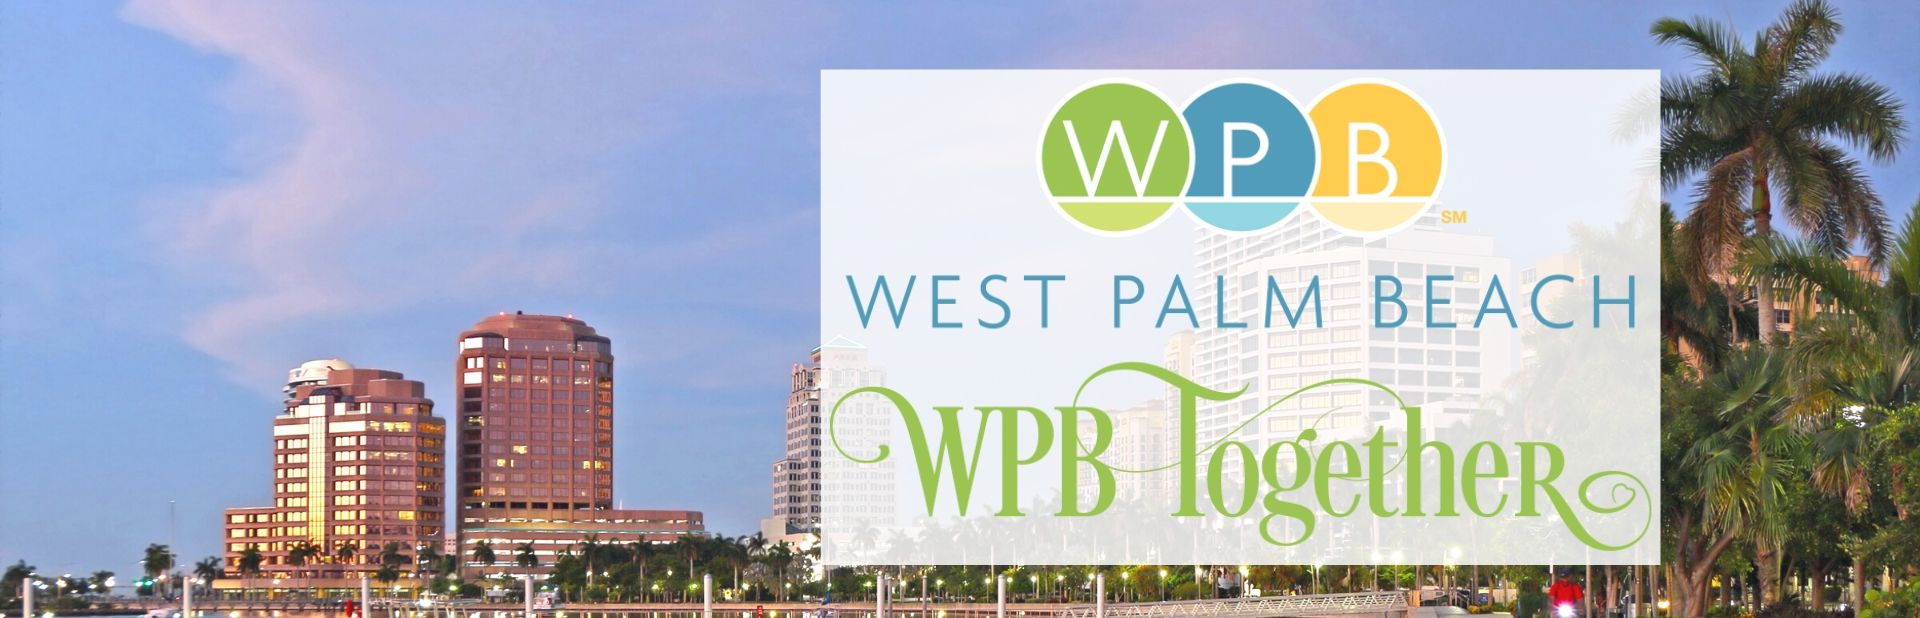 WPB Together